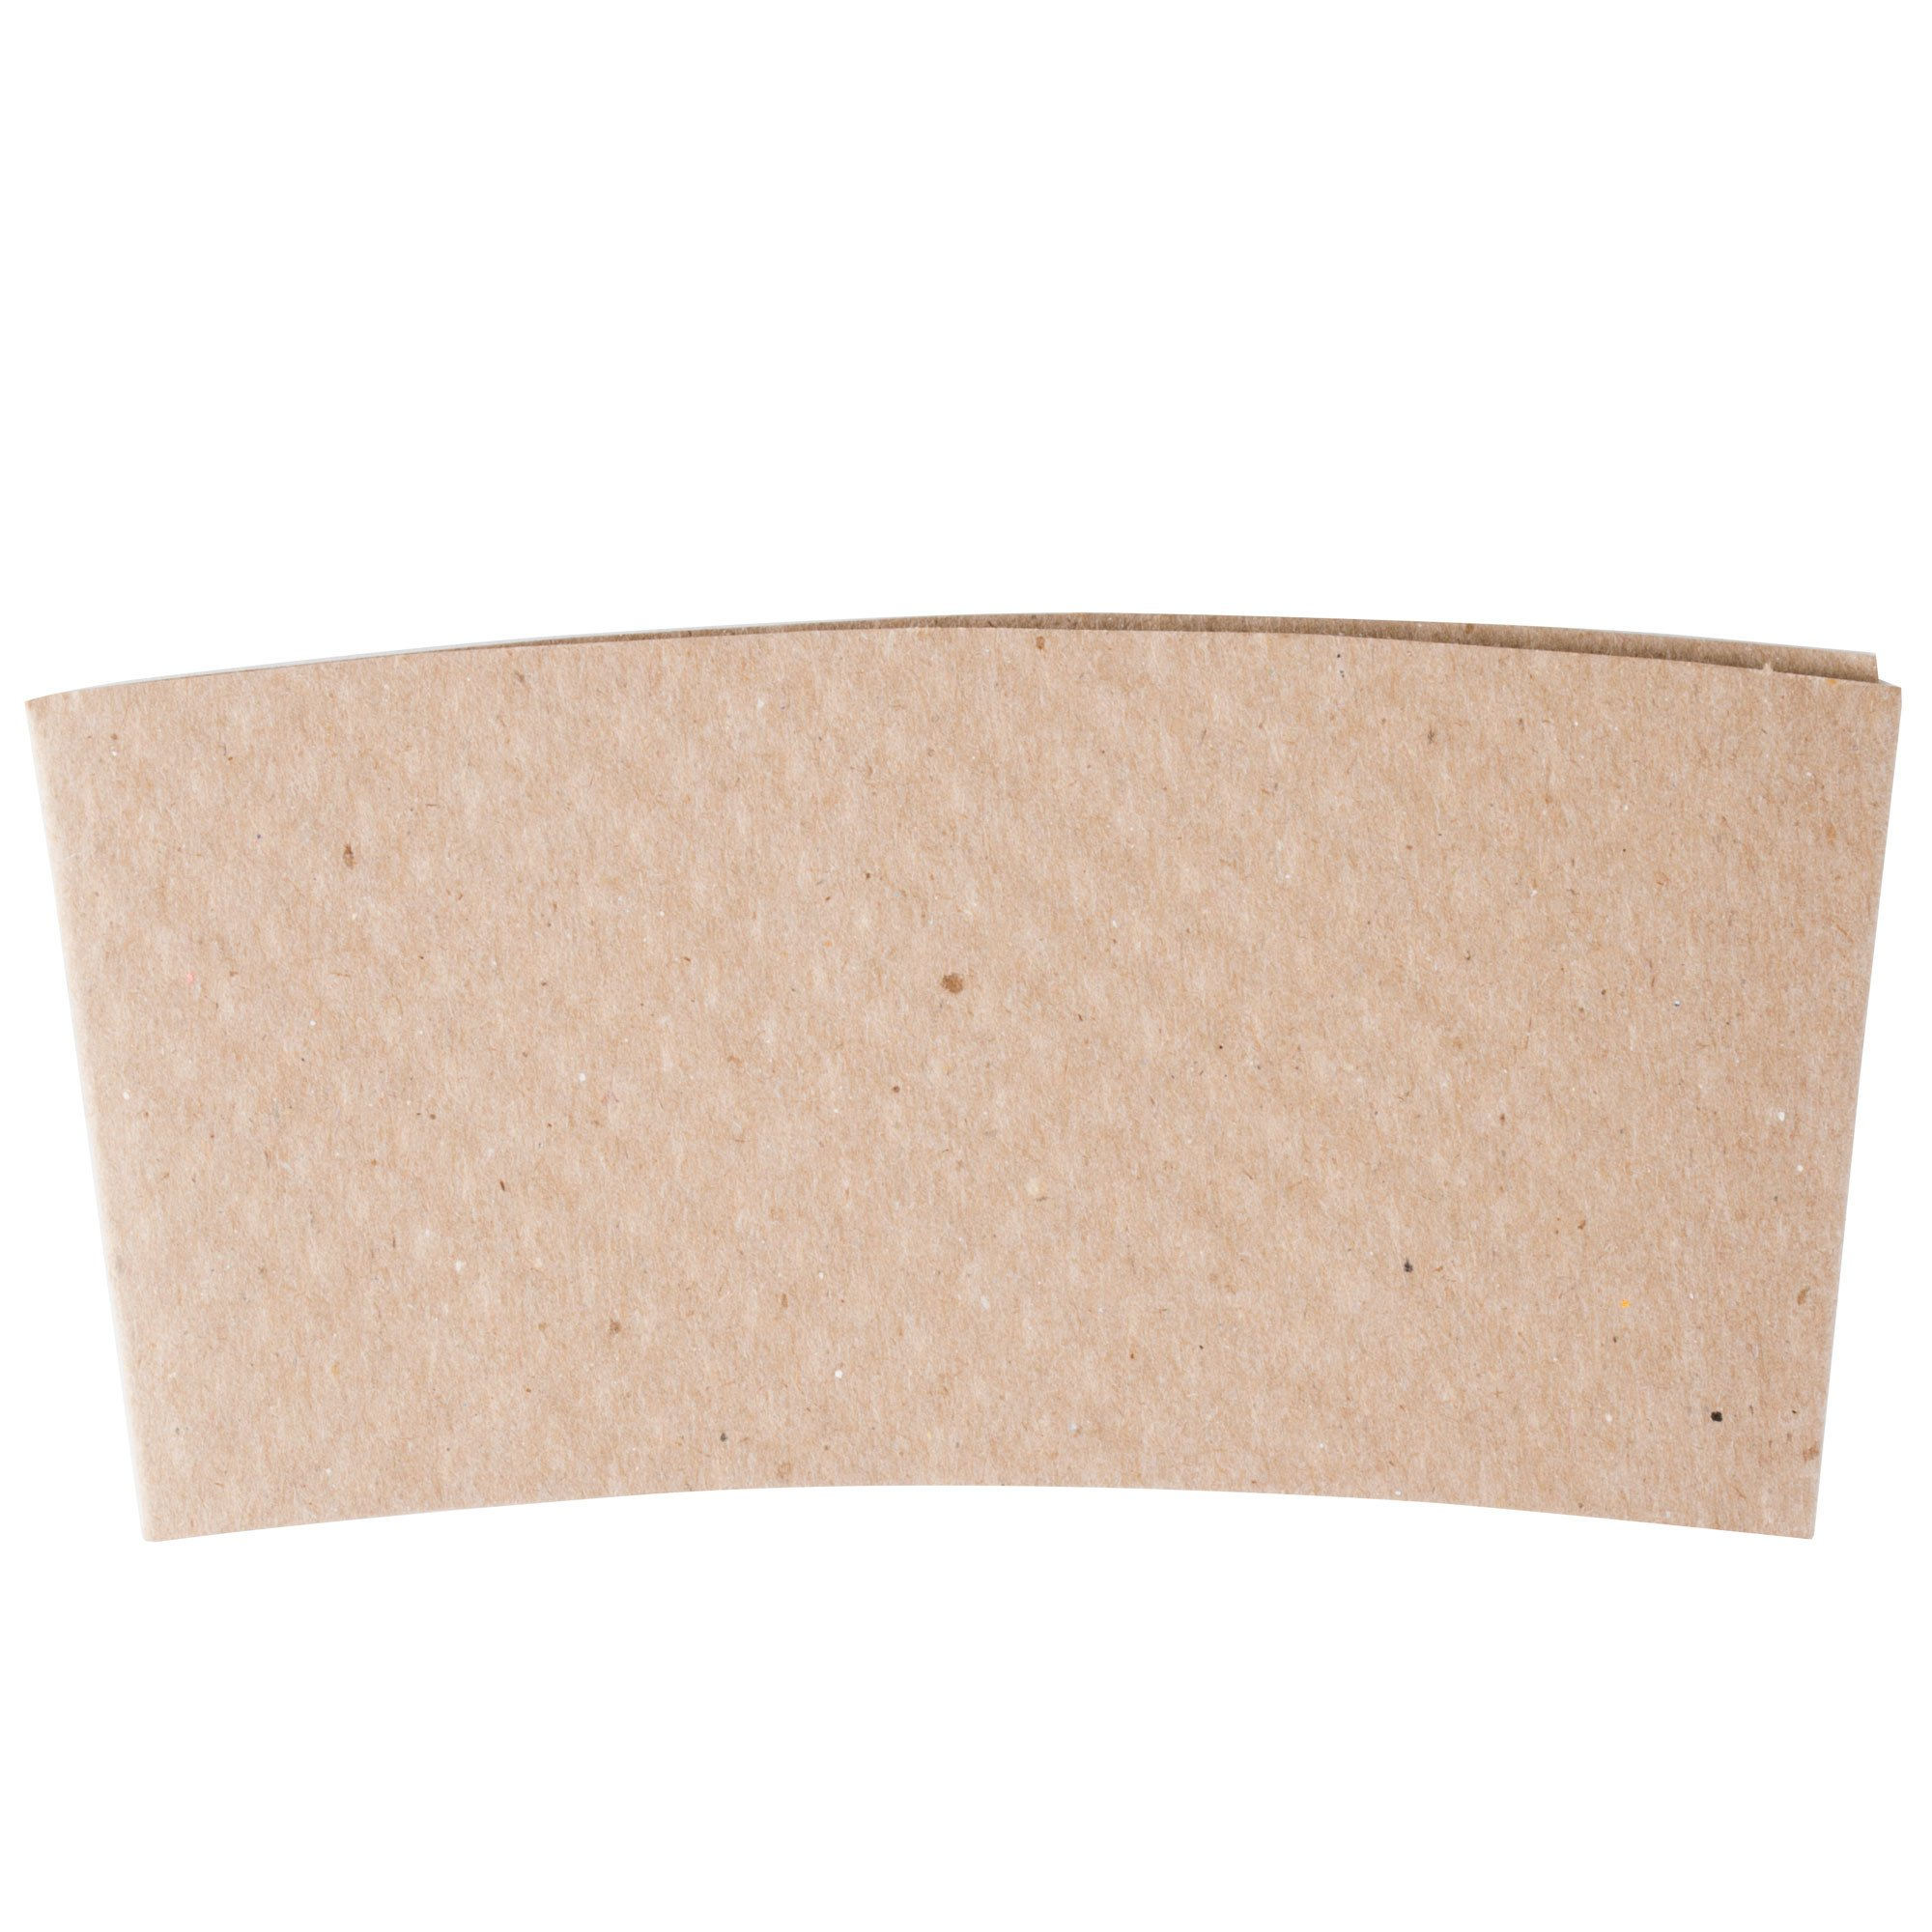 12-24 oz. Natural Kraft Customizable Embossed Coffee Cup Sleeve - 1500/Case